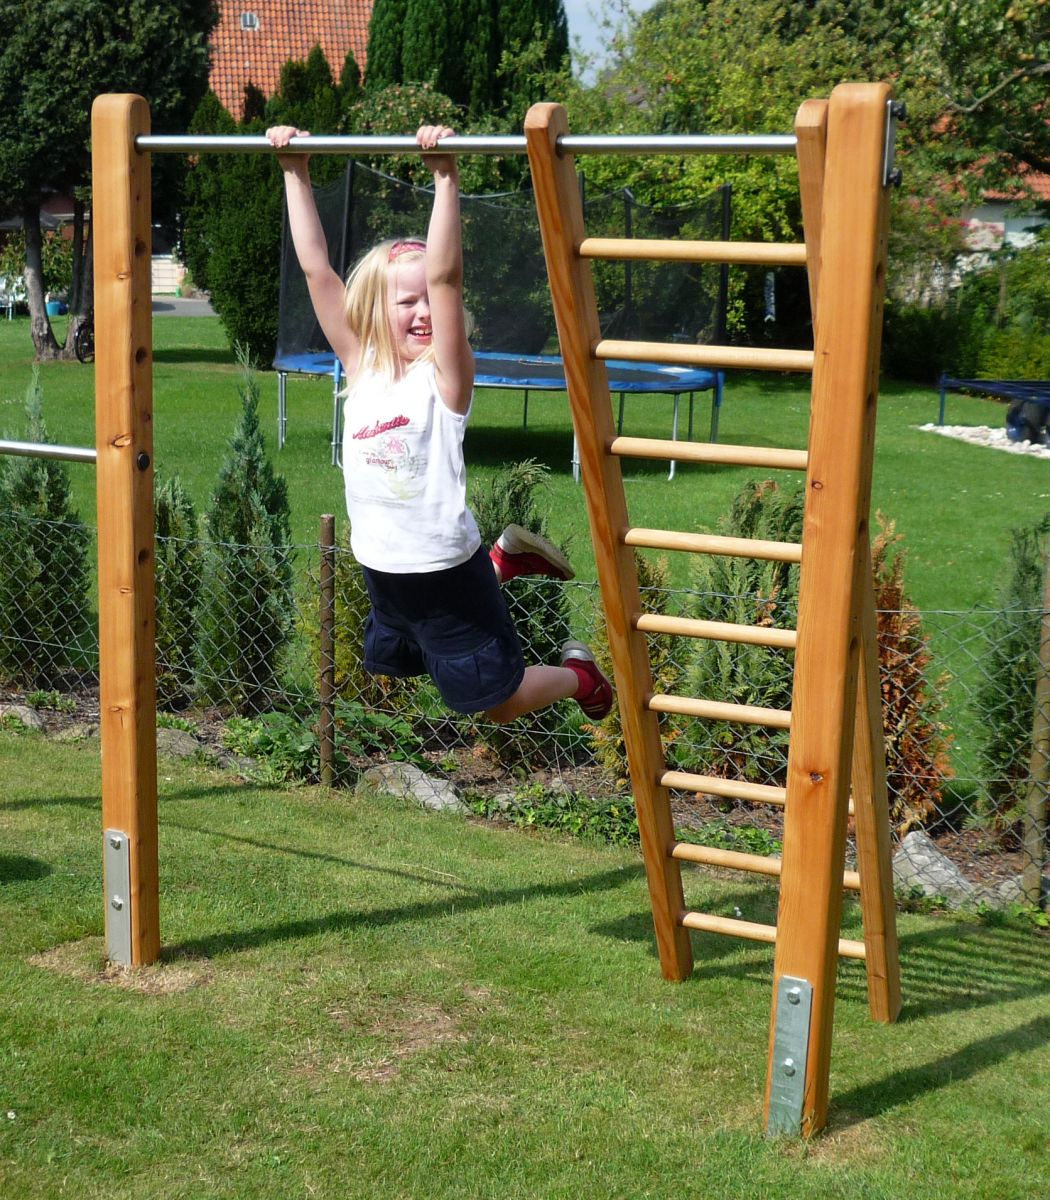 Ladder Made Of Larch Wood As An Accessory To The Gymnastic Bar